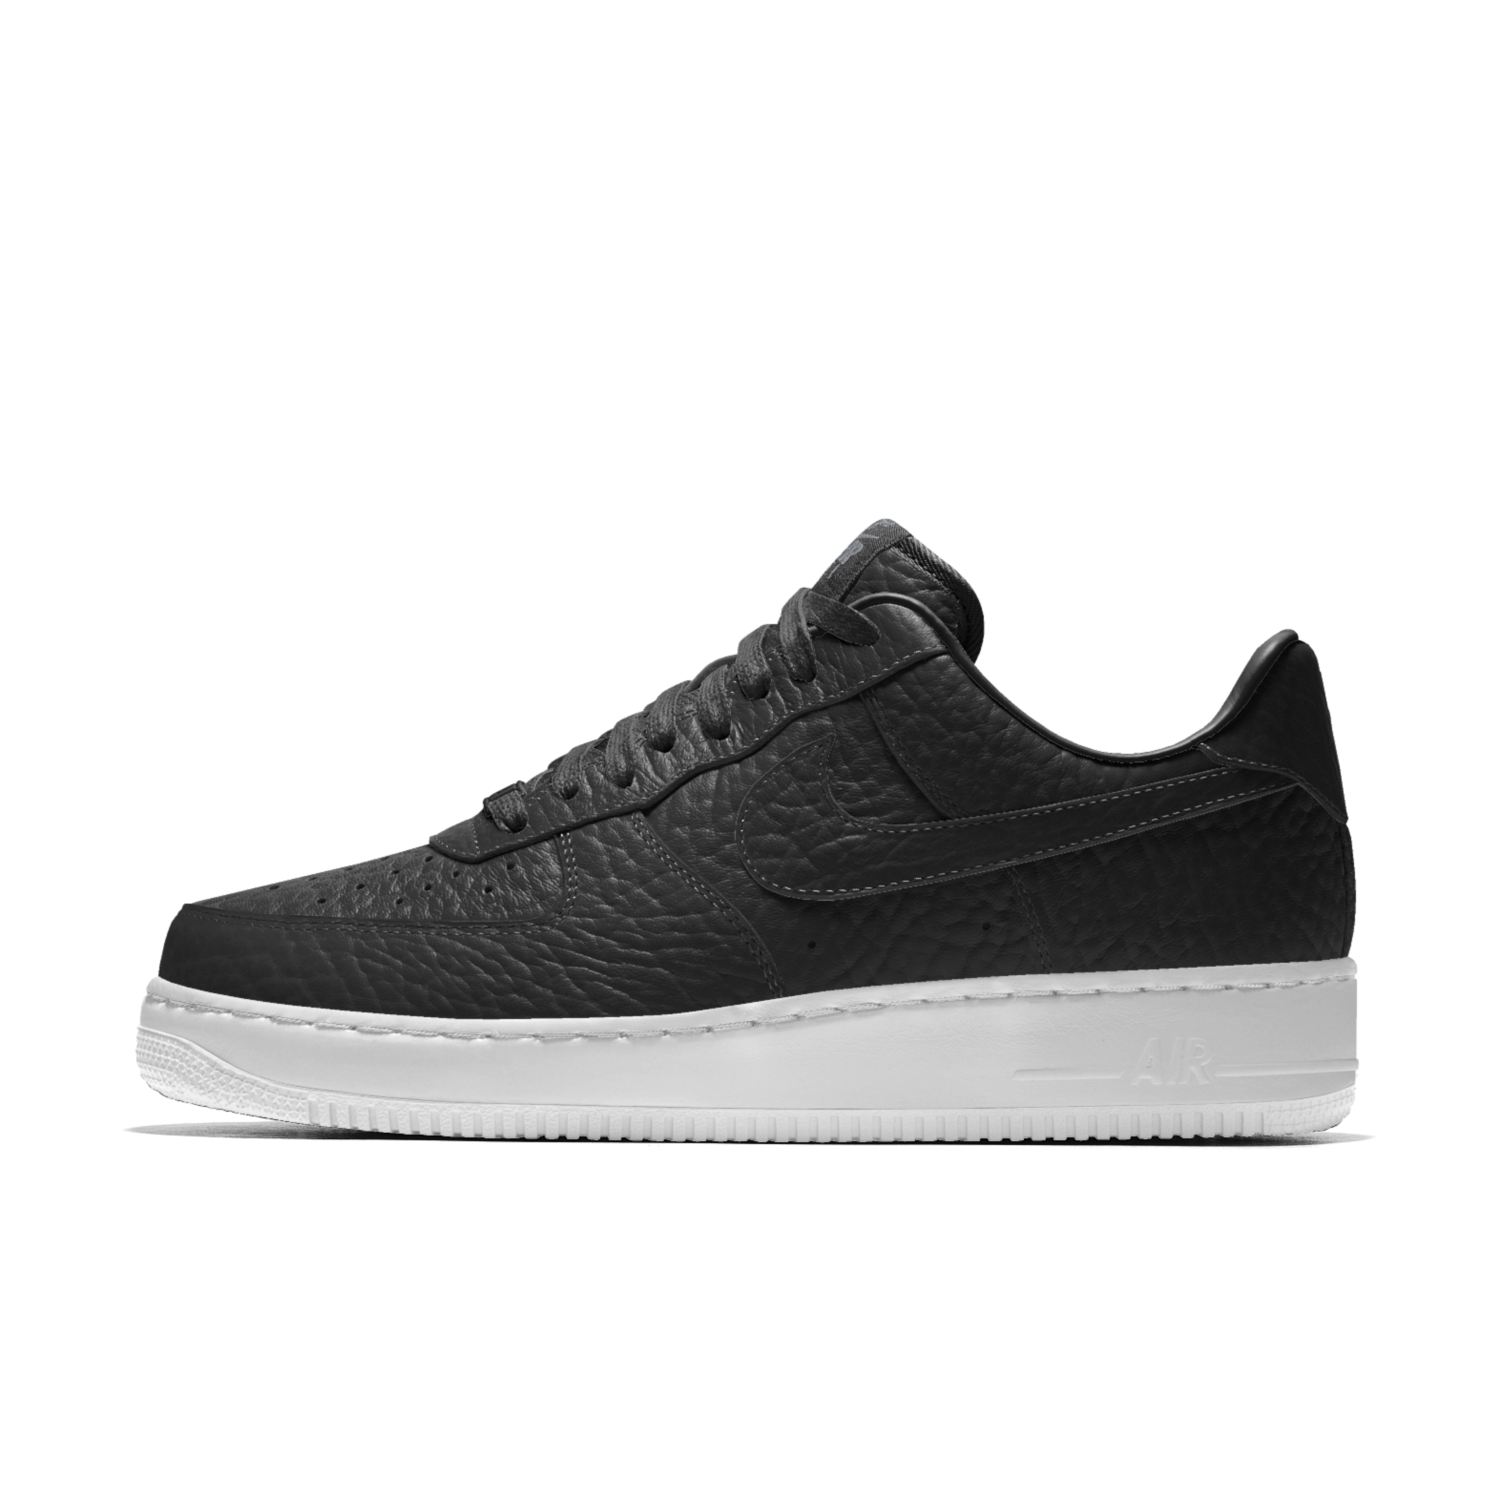 best service 37bf6 1f0e9 Nike Air Force 1 Low Premium iD (NBA) Shoe. Nike.com | shoes ...